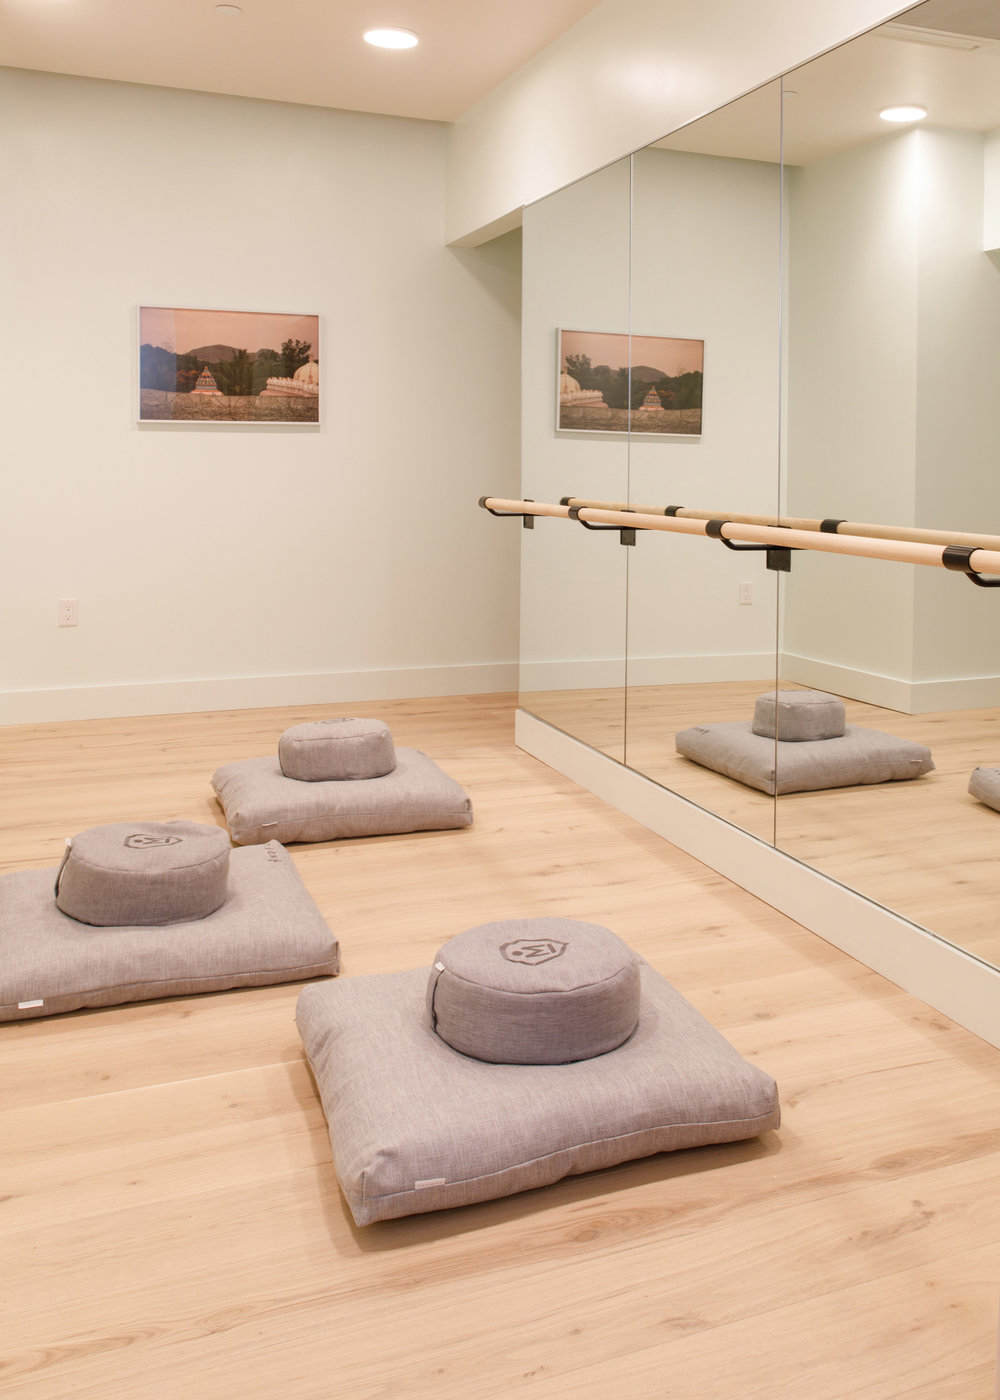 Yoga and barre studio with meditation pillows facing a mirror in The Wing Dumbo, Brooklyn. MEP Engineering designed by 2LS Consulting Engineering.